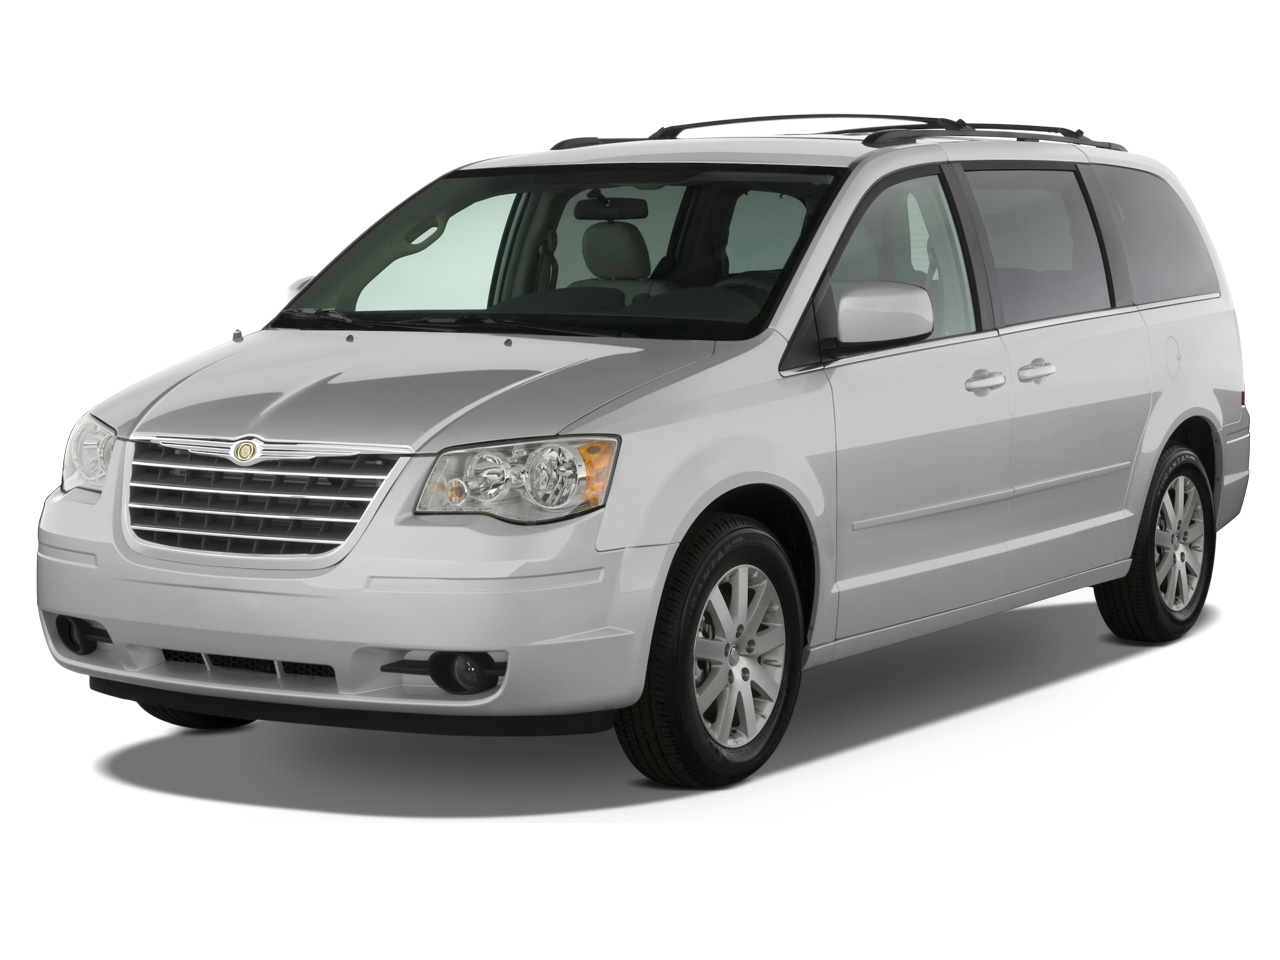 chrysler town & country lx #6